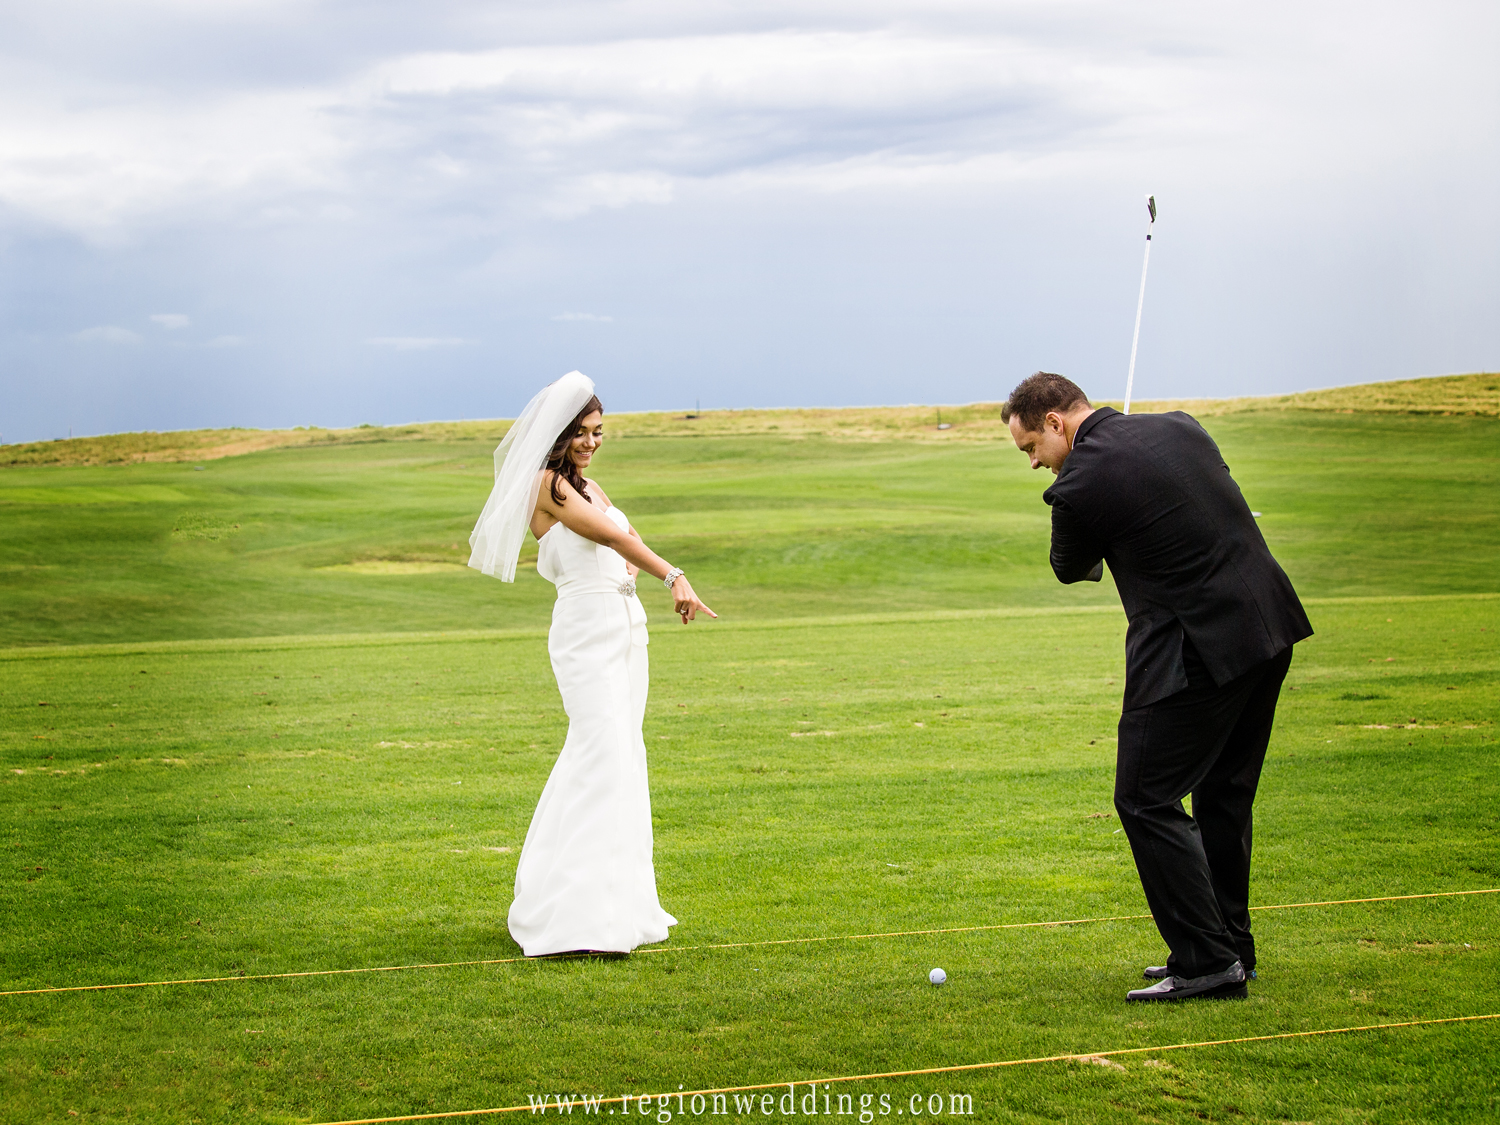 The bride and groom try out the golf driving range at Centennial Park.